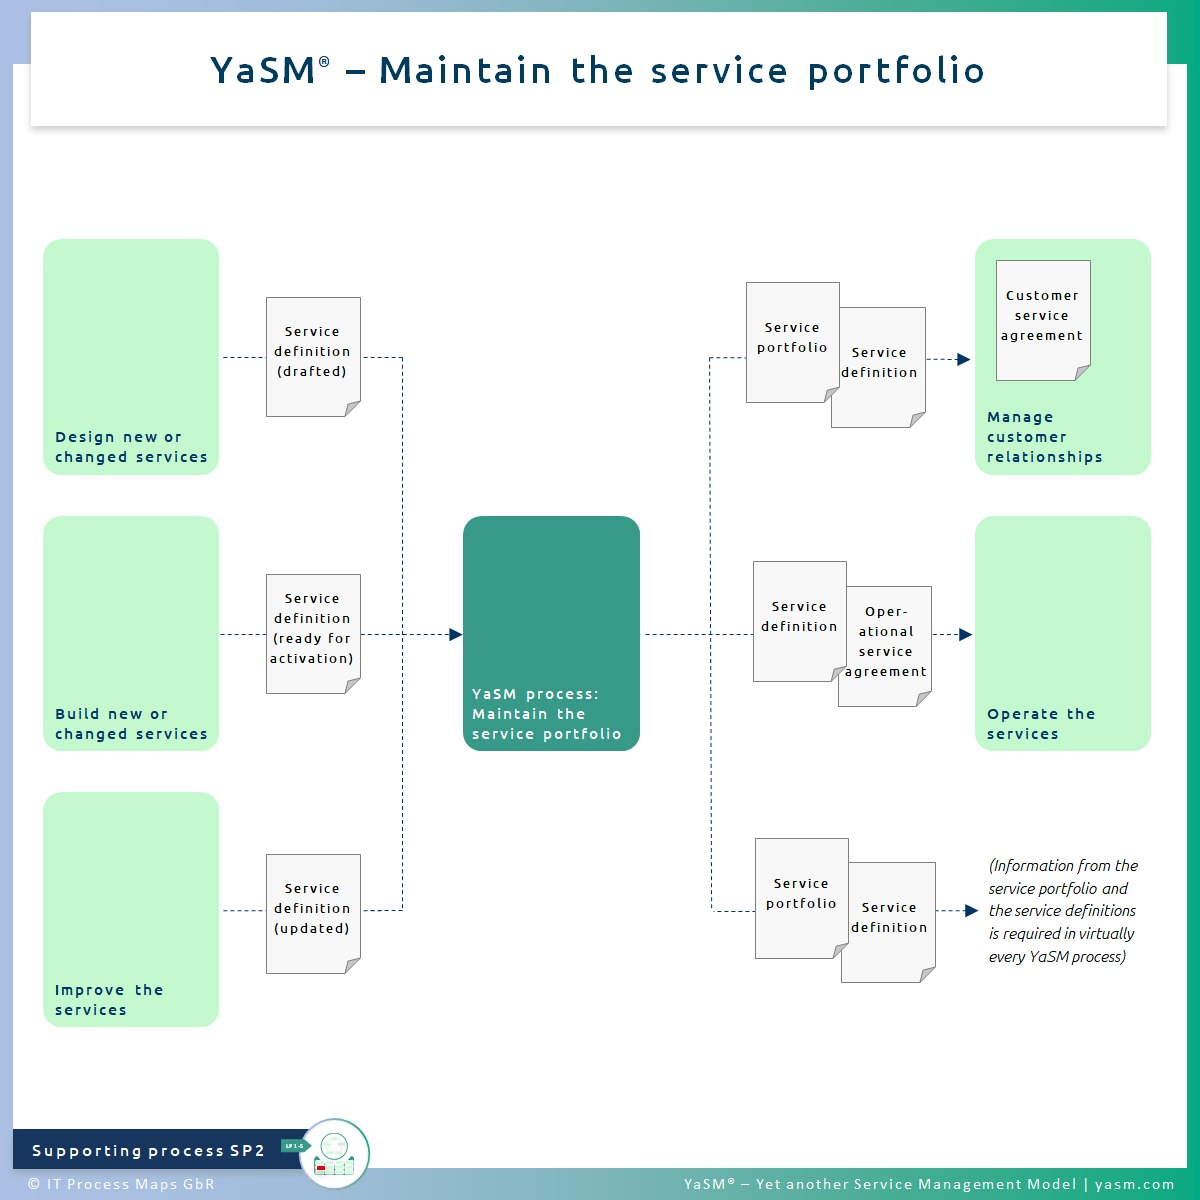 Fig. 1: Maintain the service portfolio. - YaSM portfolio maintenance process SP2.